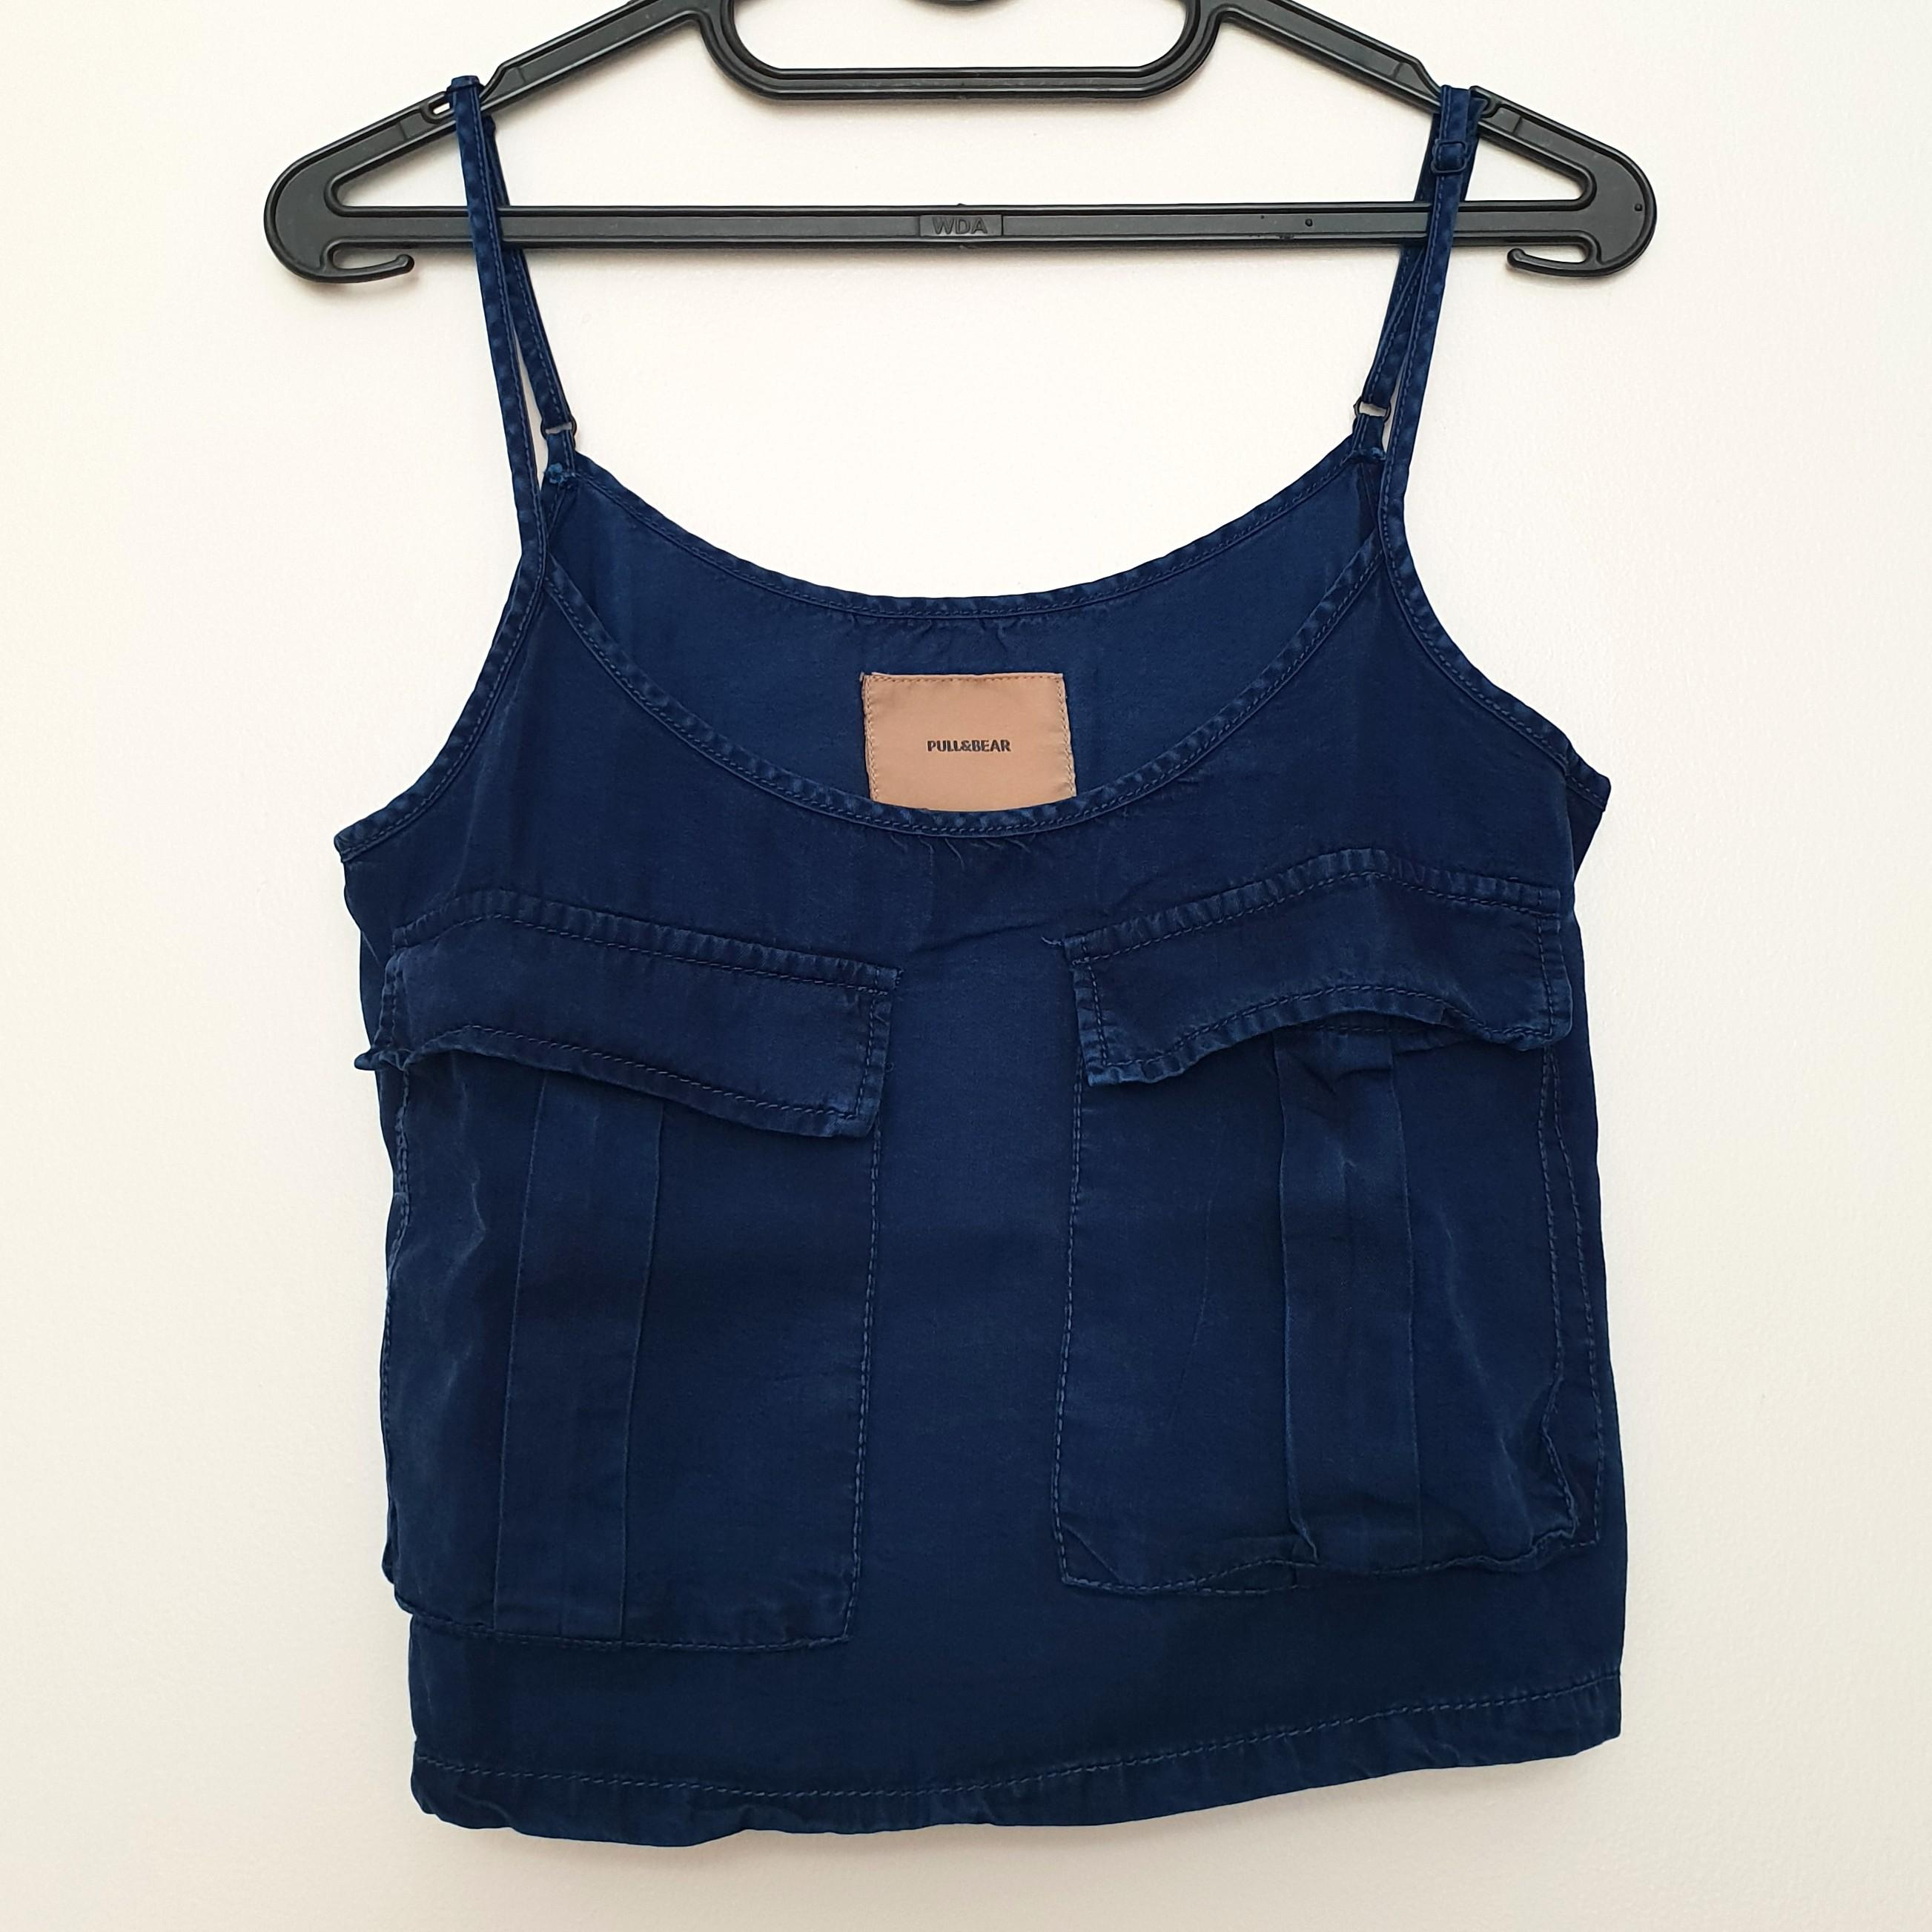 Pull and bear navy blue / jeans spaghetti straps crop top